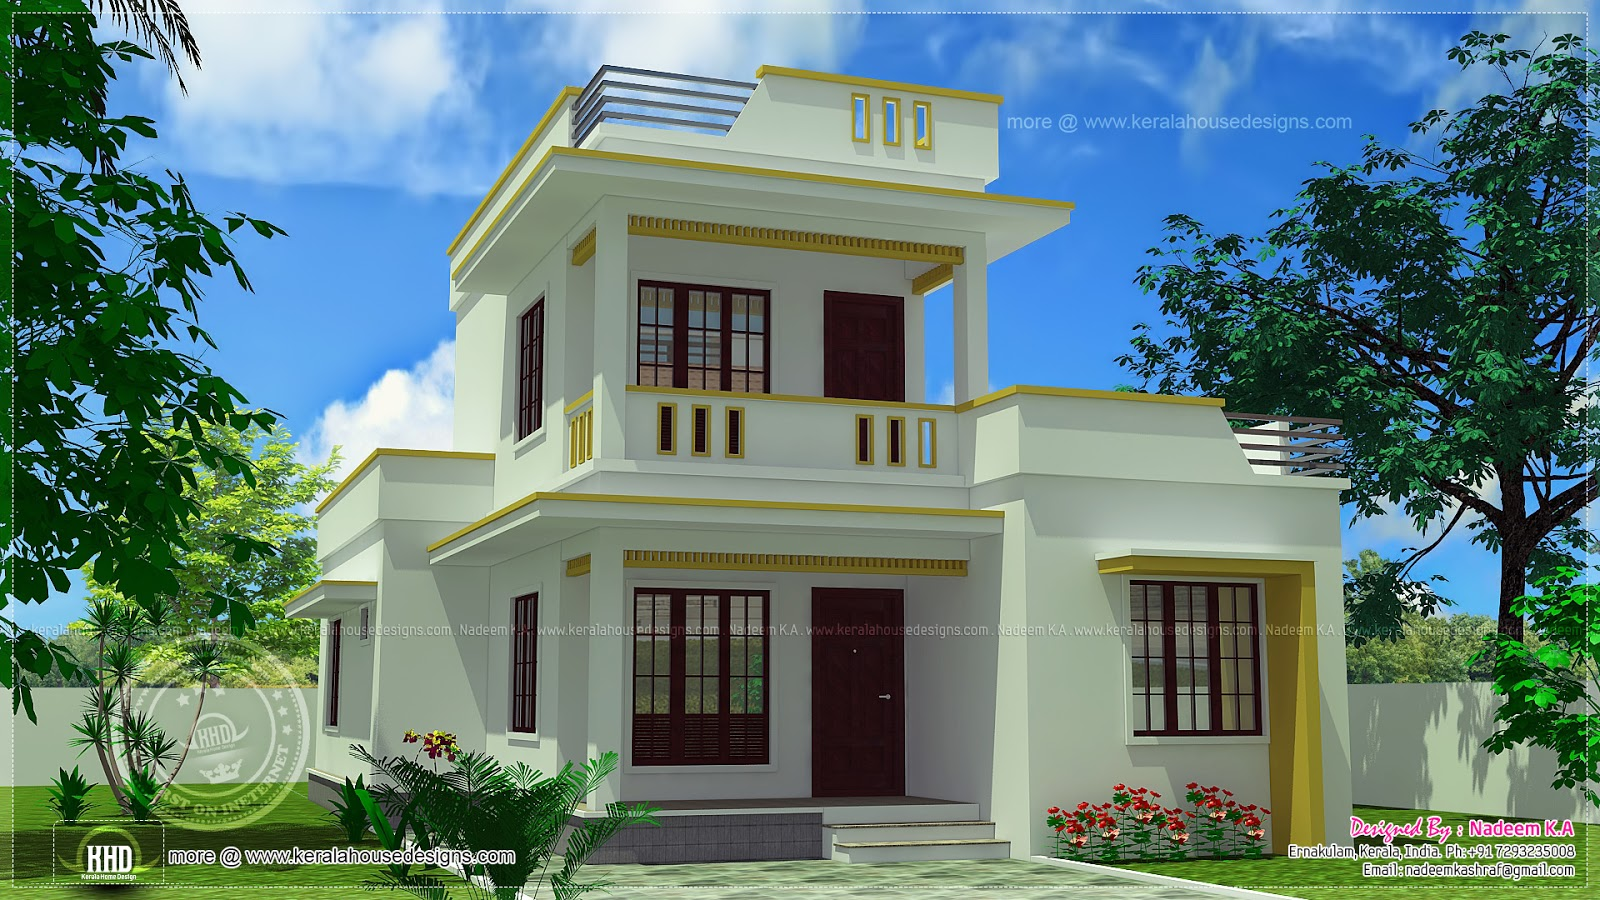 Full House Floor Plan August 2013 Kerala Home Design And Floor Plans